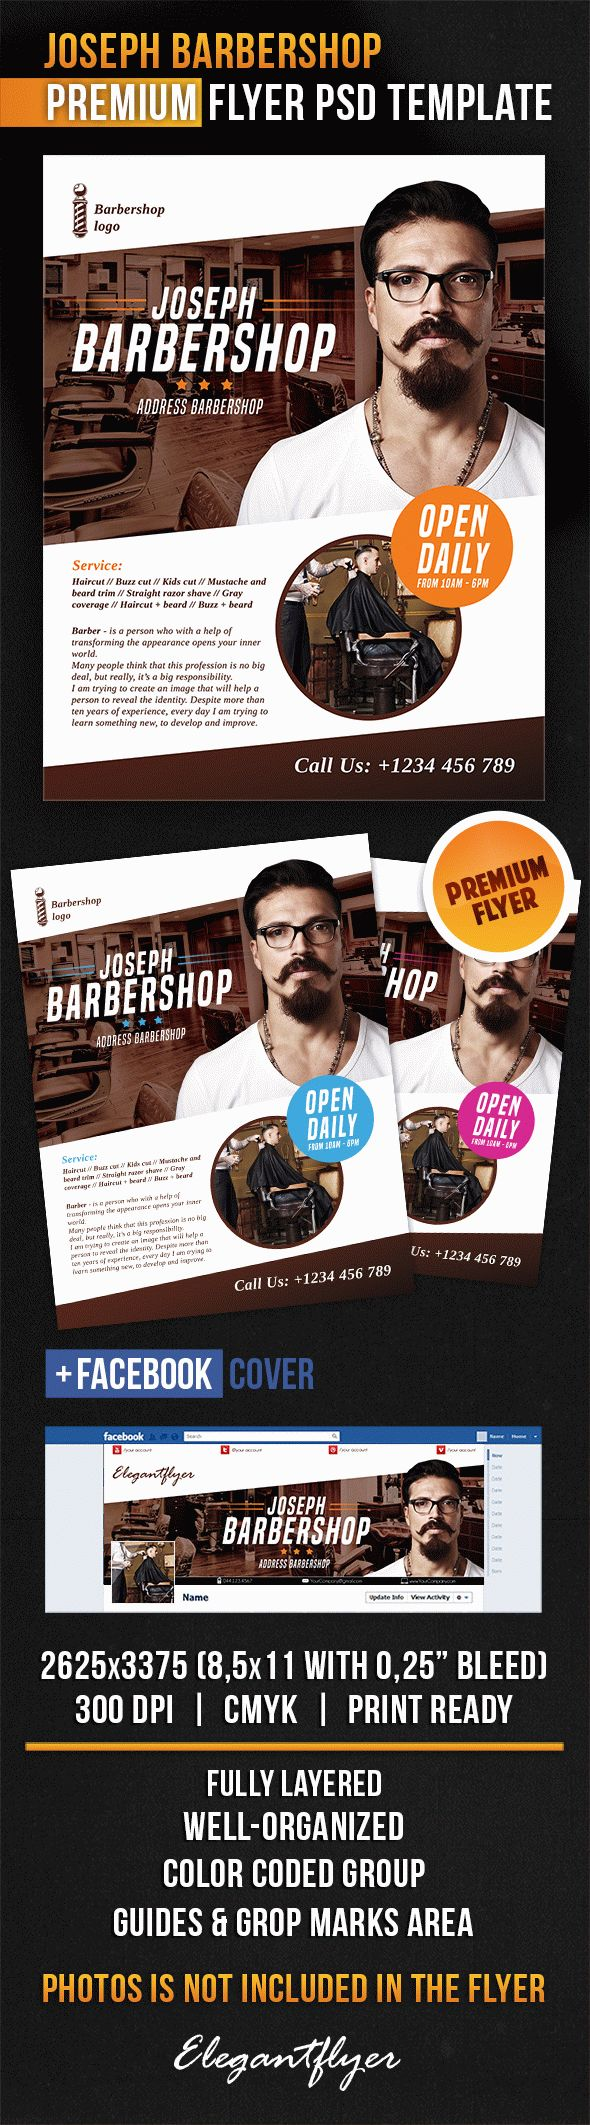 Joseph Barbershop – Flyer PSD Template + Facebook Cover